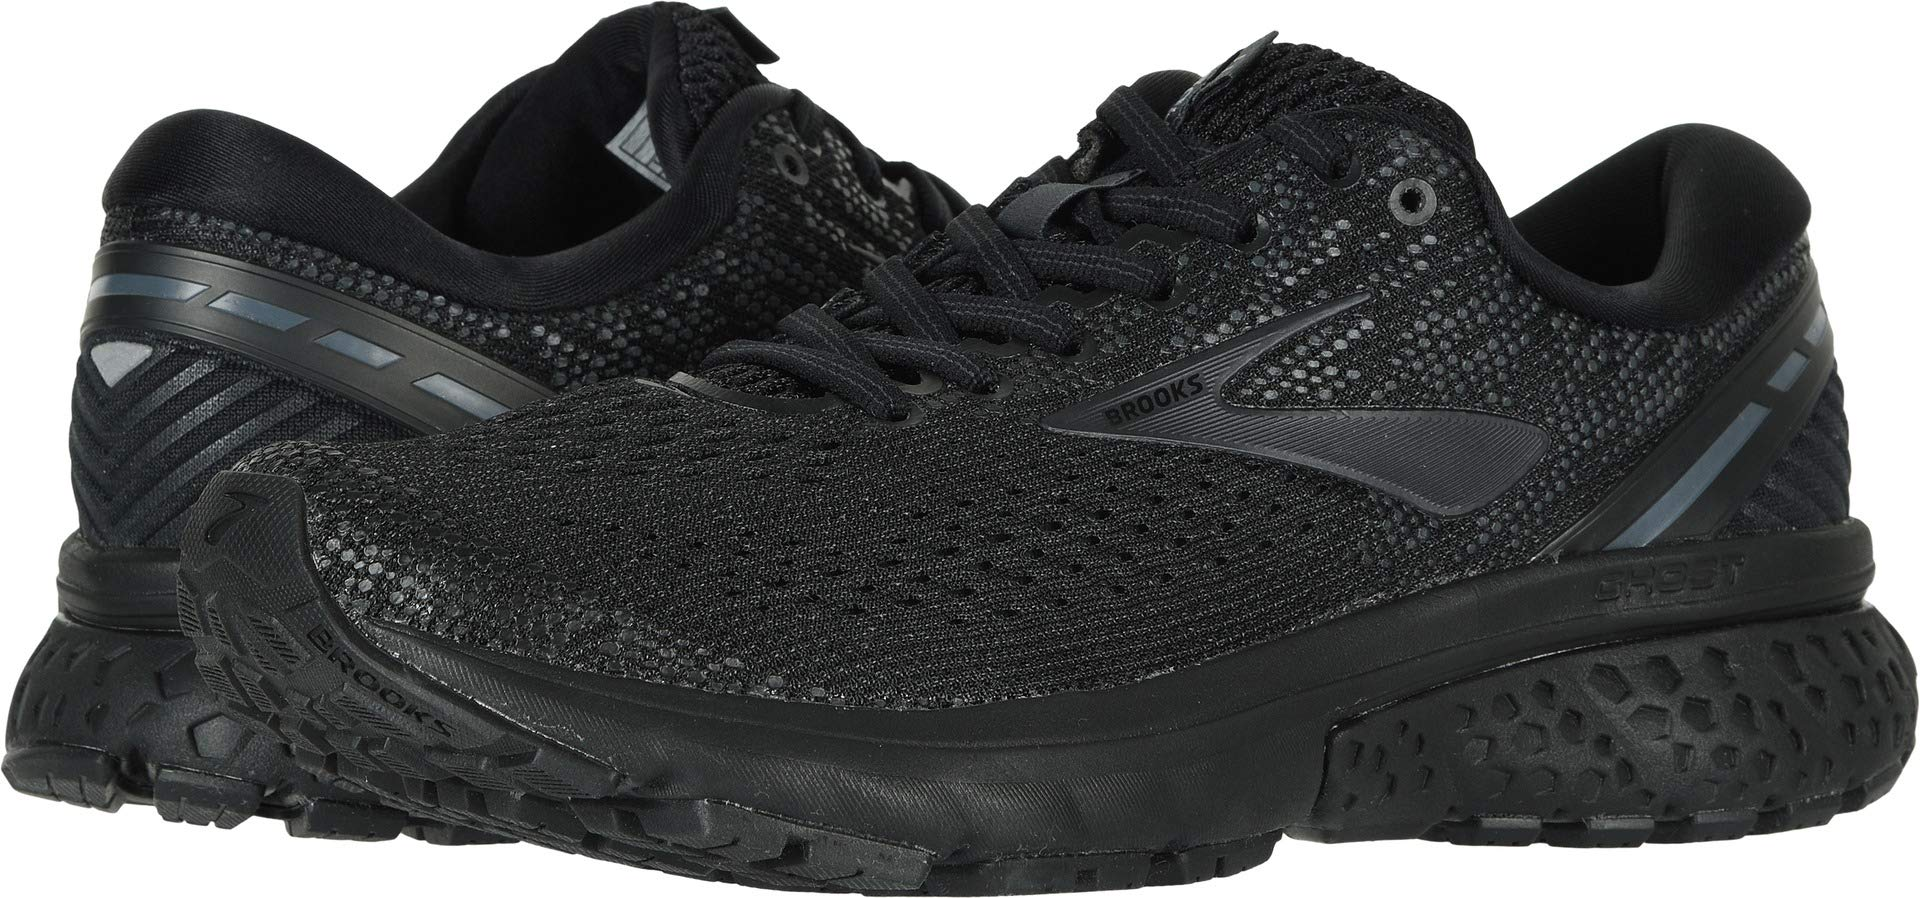 Brooks Women's Ghost 11 Black/Ebony 8.5 B US by Brooks